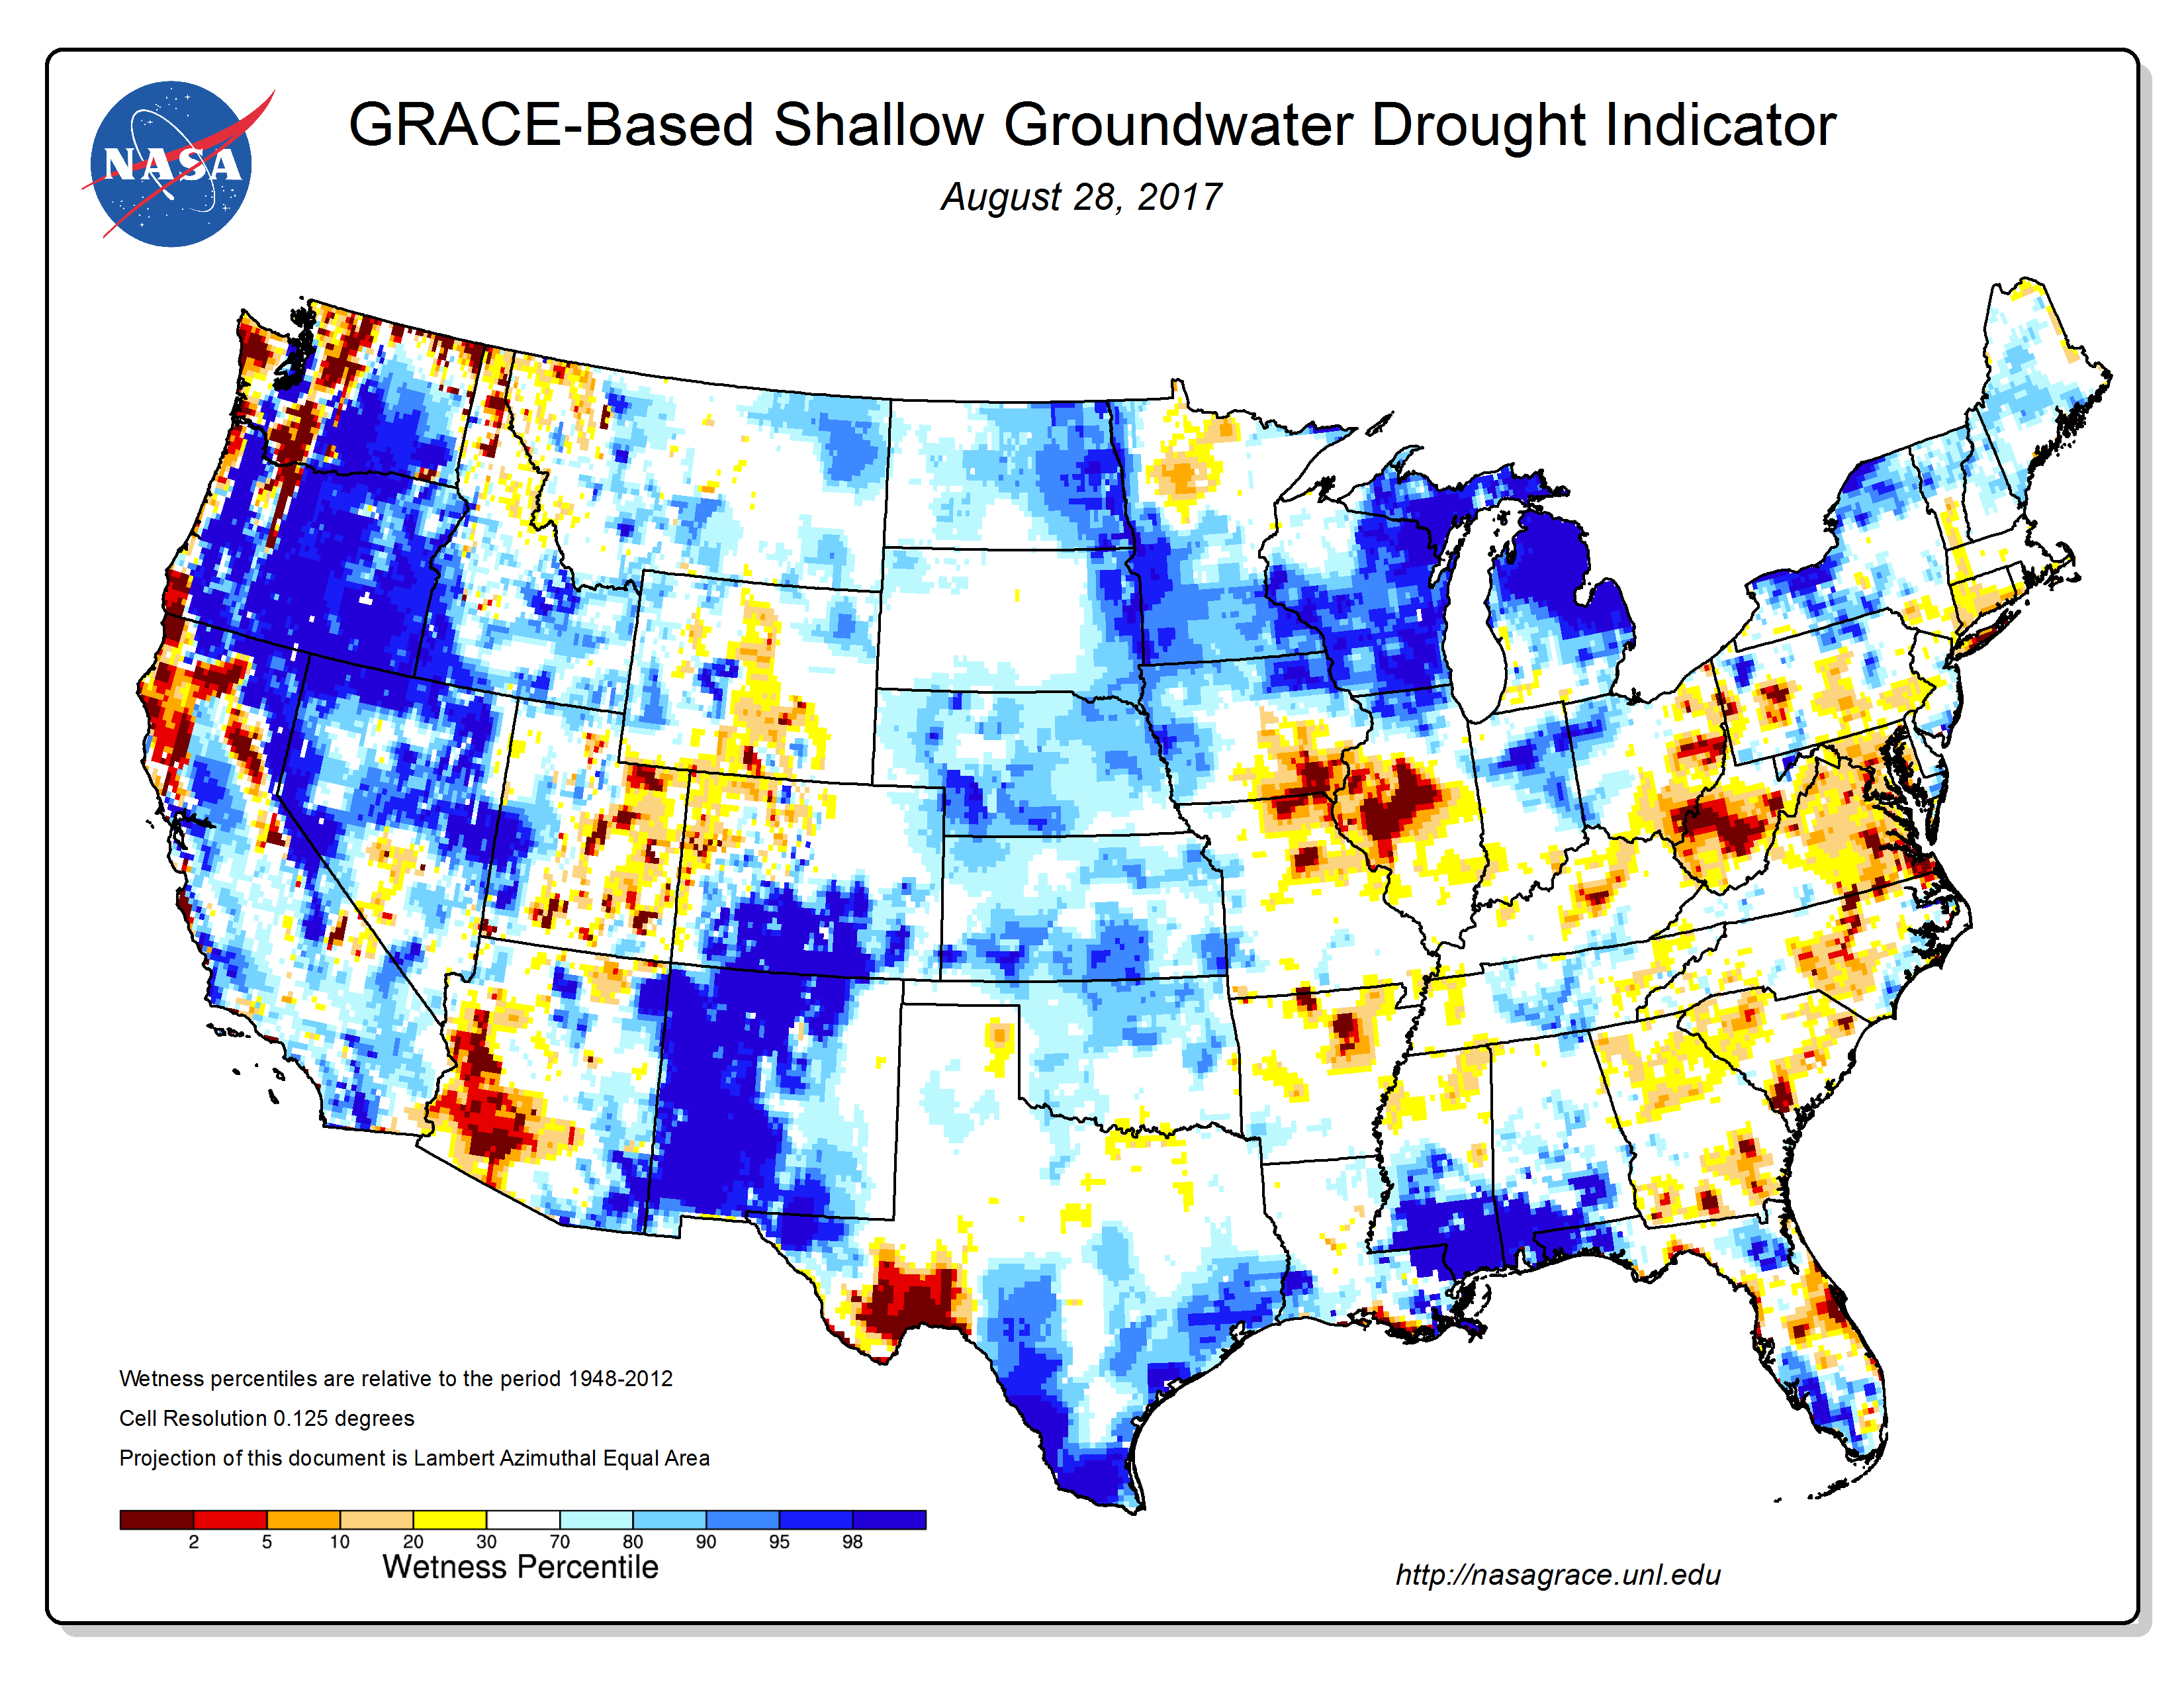 Drought Conditions At The End Of August 2017 Were Reflected In A Number Of Meteorological Hydrological And Agricultural Indicators Both Observed And